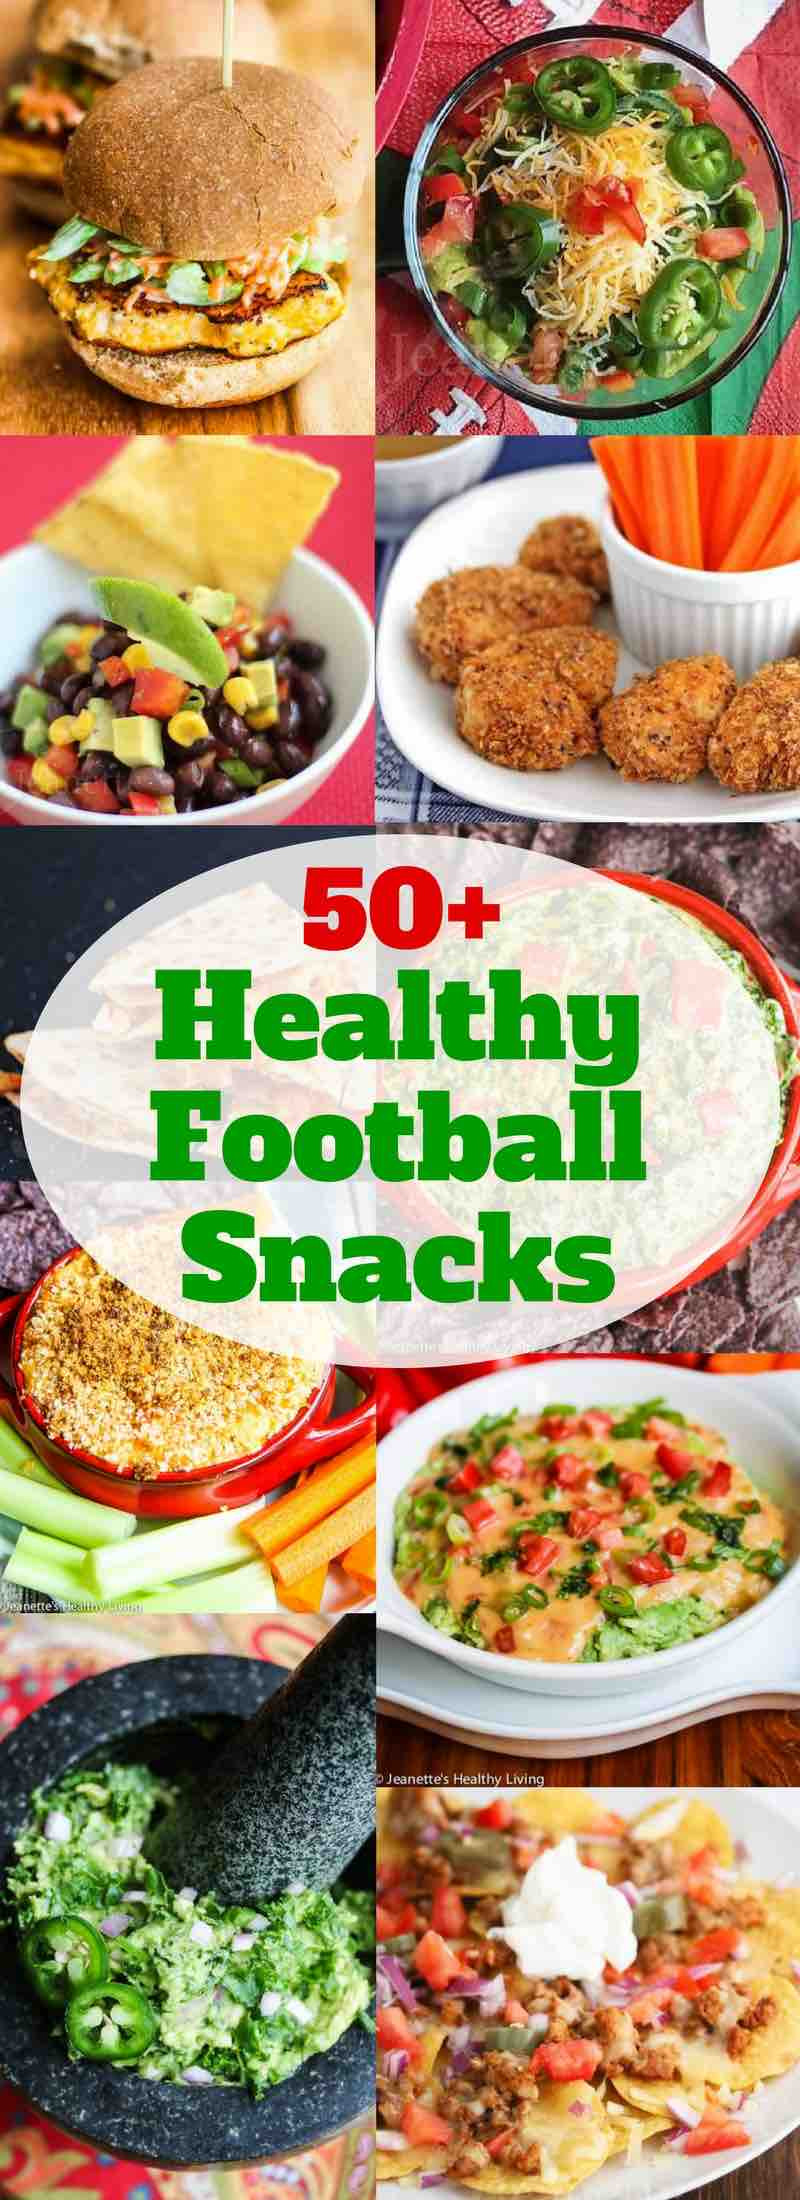 Healthy Gaming Snacks  50 Healthy Football Snacks Jeanette s Healthy Living